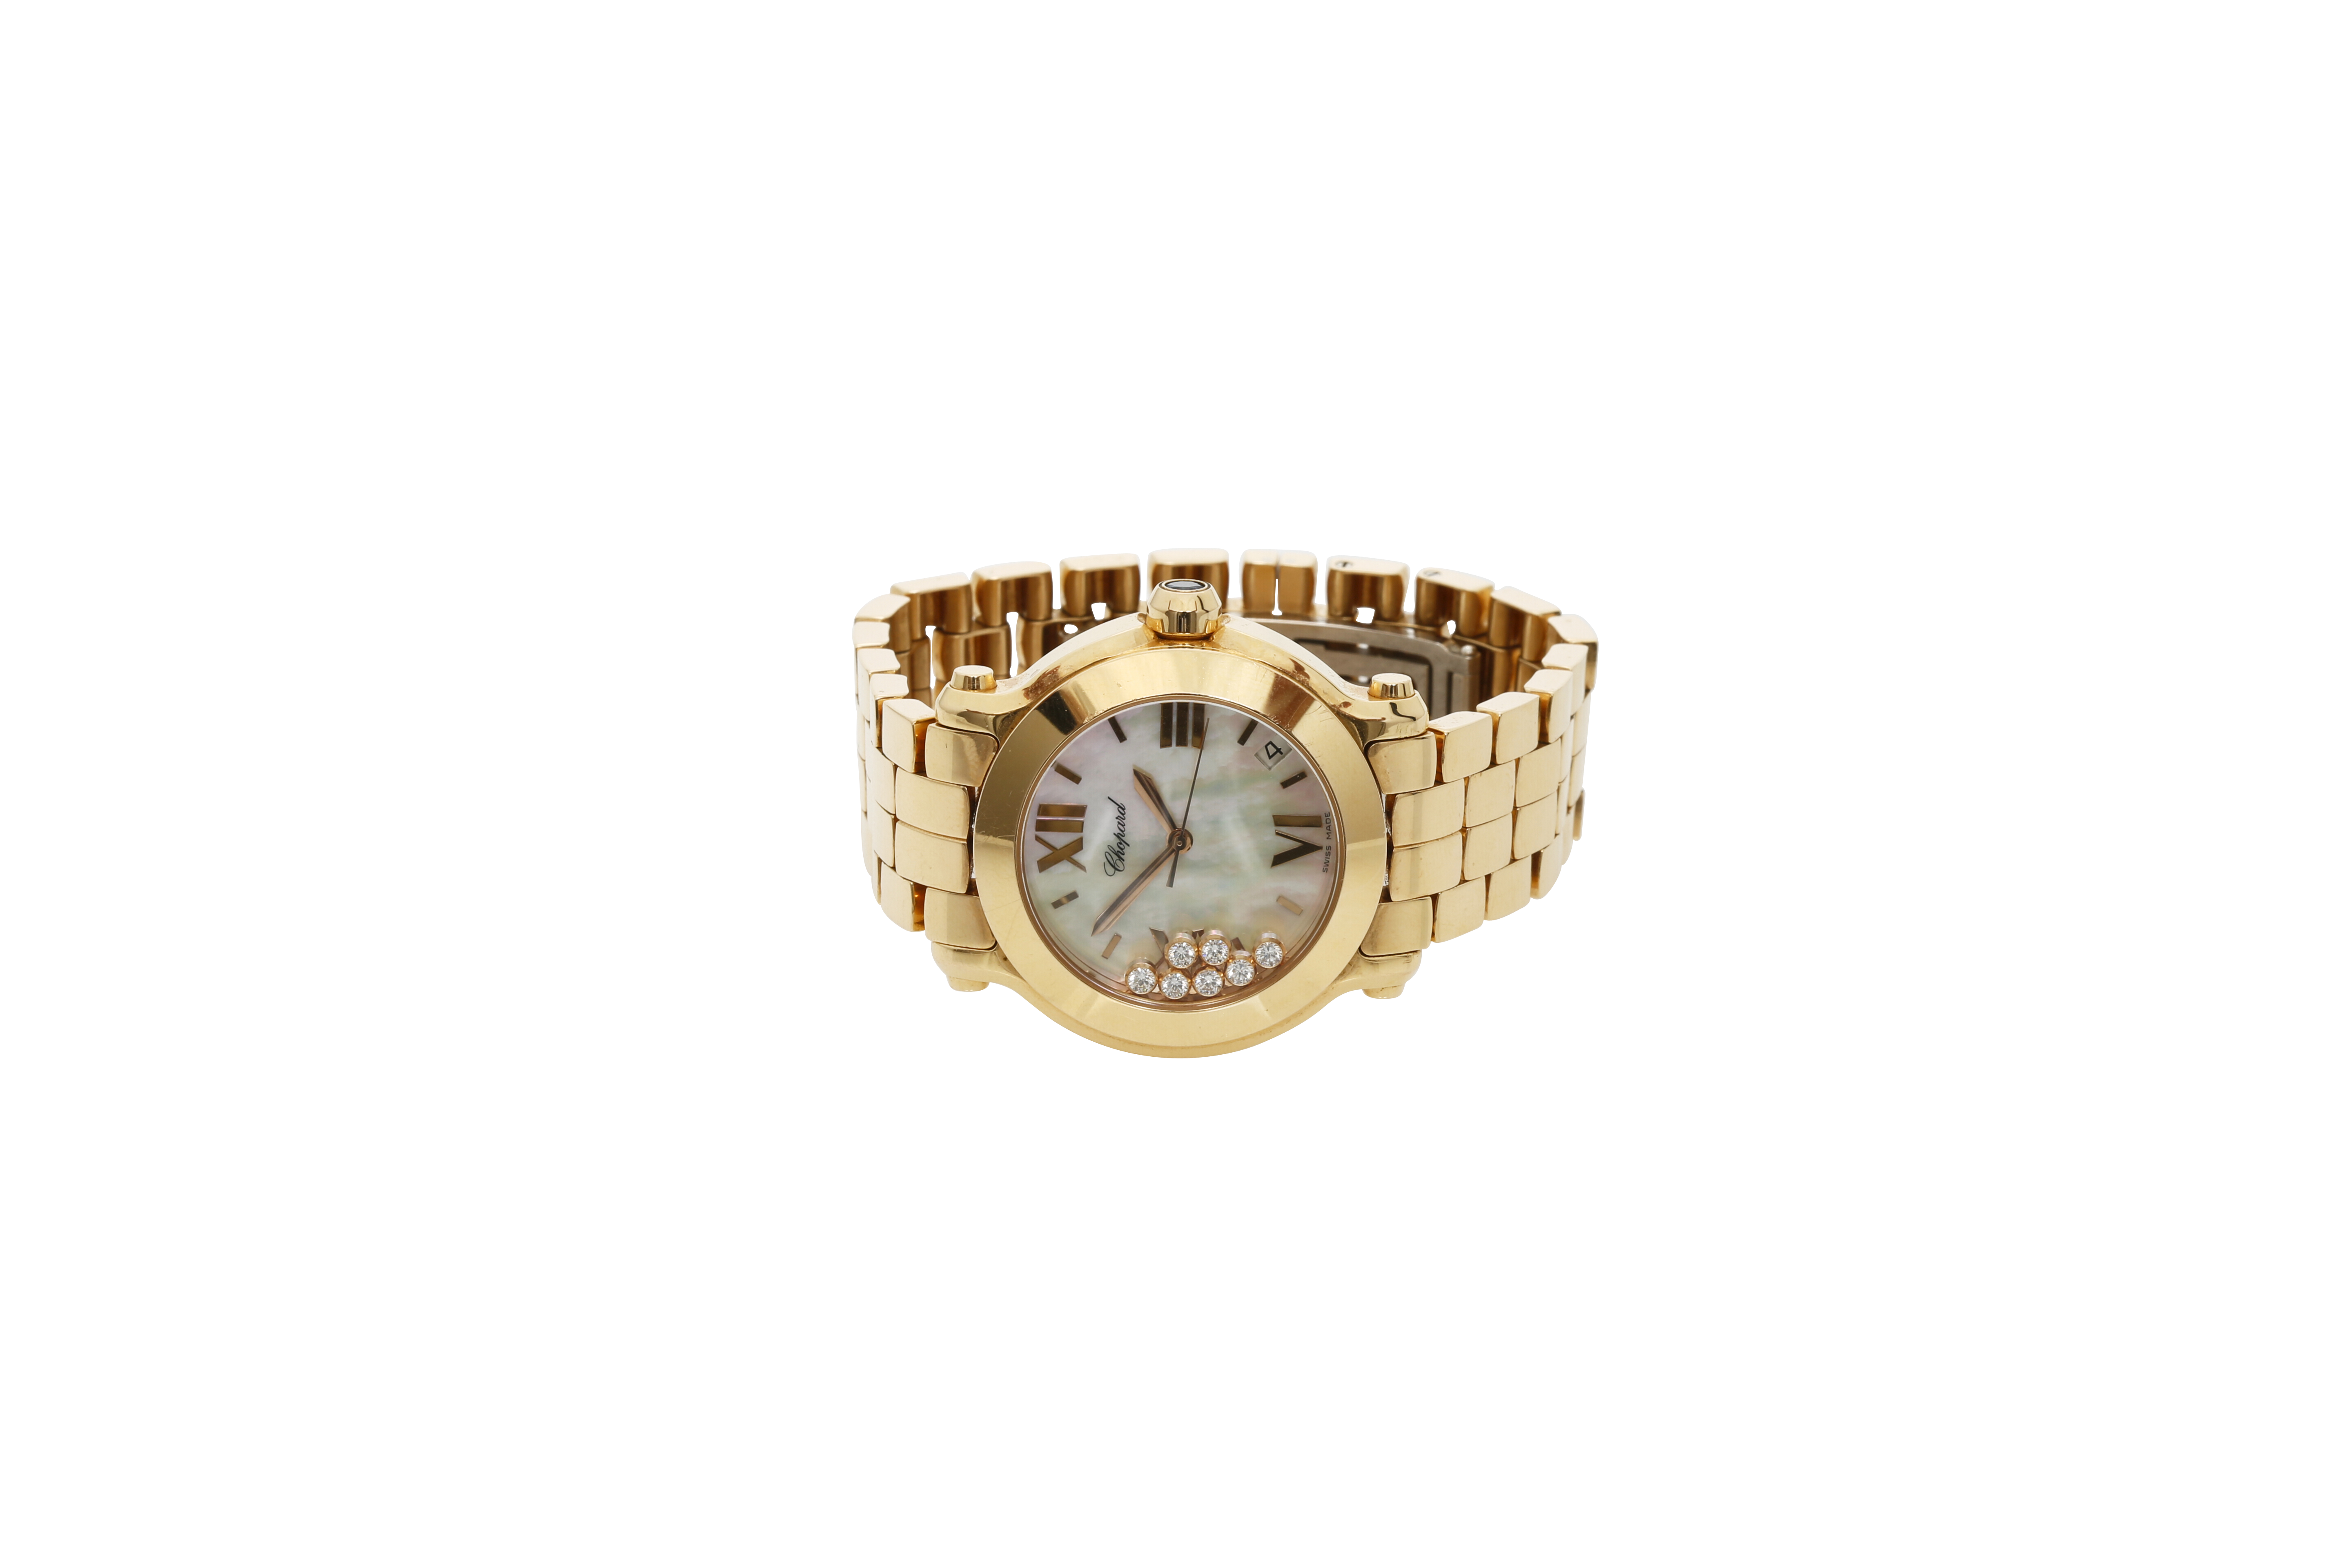 A Lady's 18K Rotgold Chopard Happy Sport Wristwatch with 1 Sapphire and 7 Diamonds - Image 3 of 10